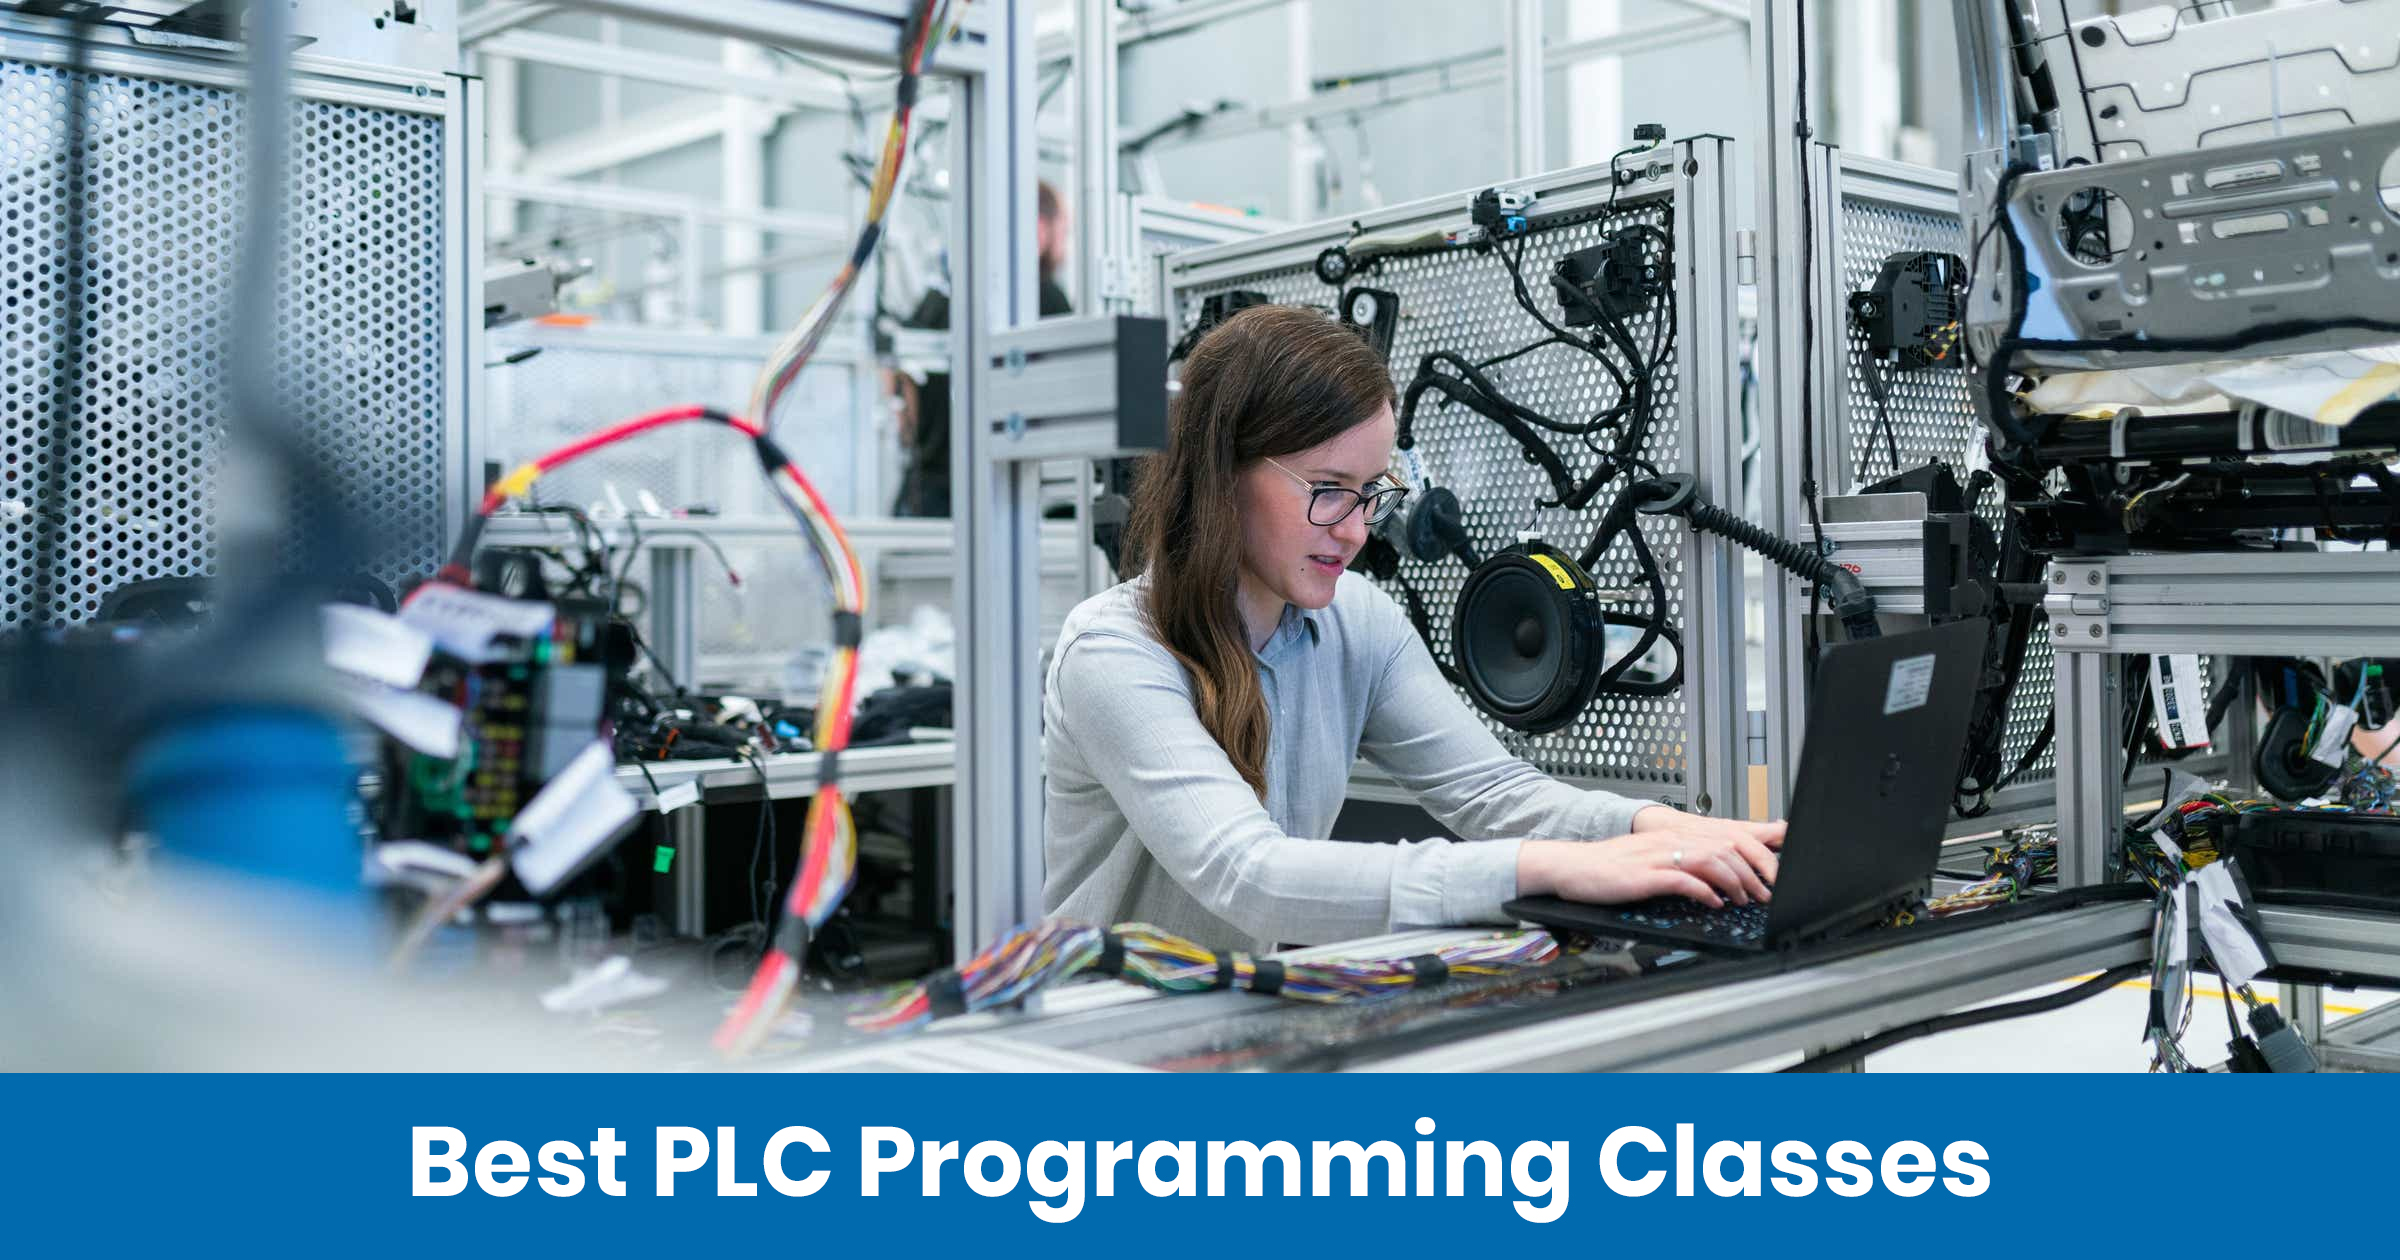 Best PLC Programming Classes and Training Courses